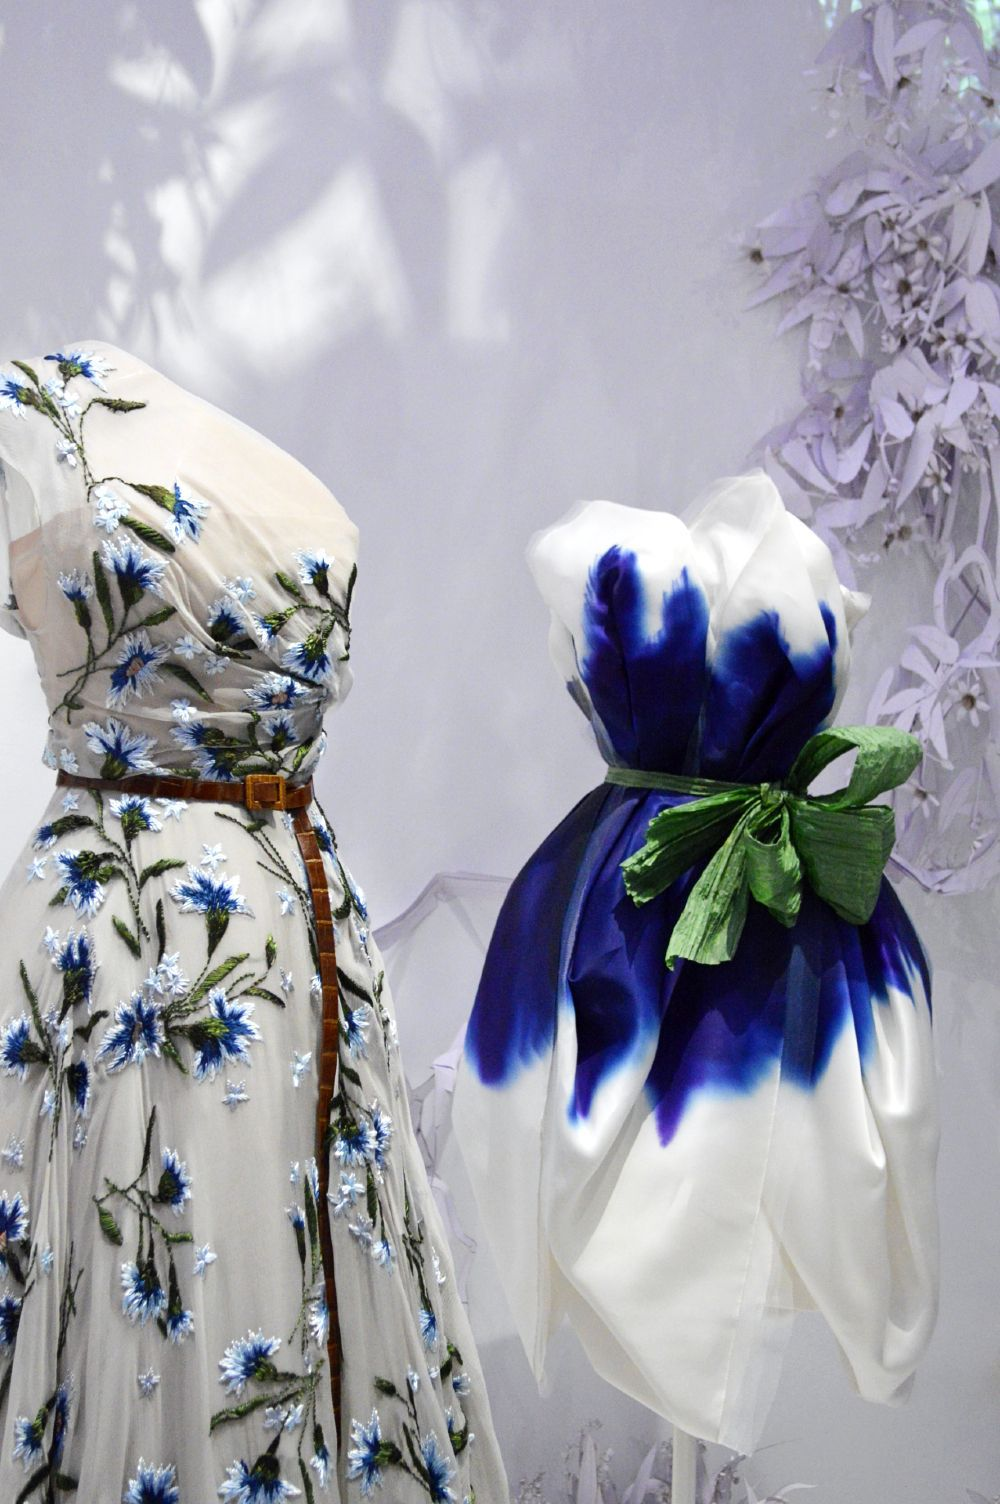 5 Things You Need To Know About the Vintage Christian Dior: Designer of Dreams V&A Exhibit